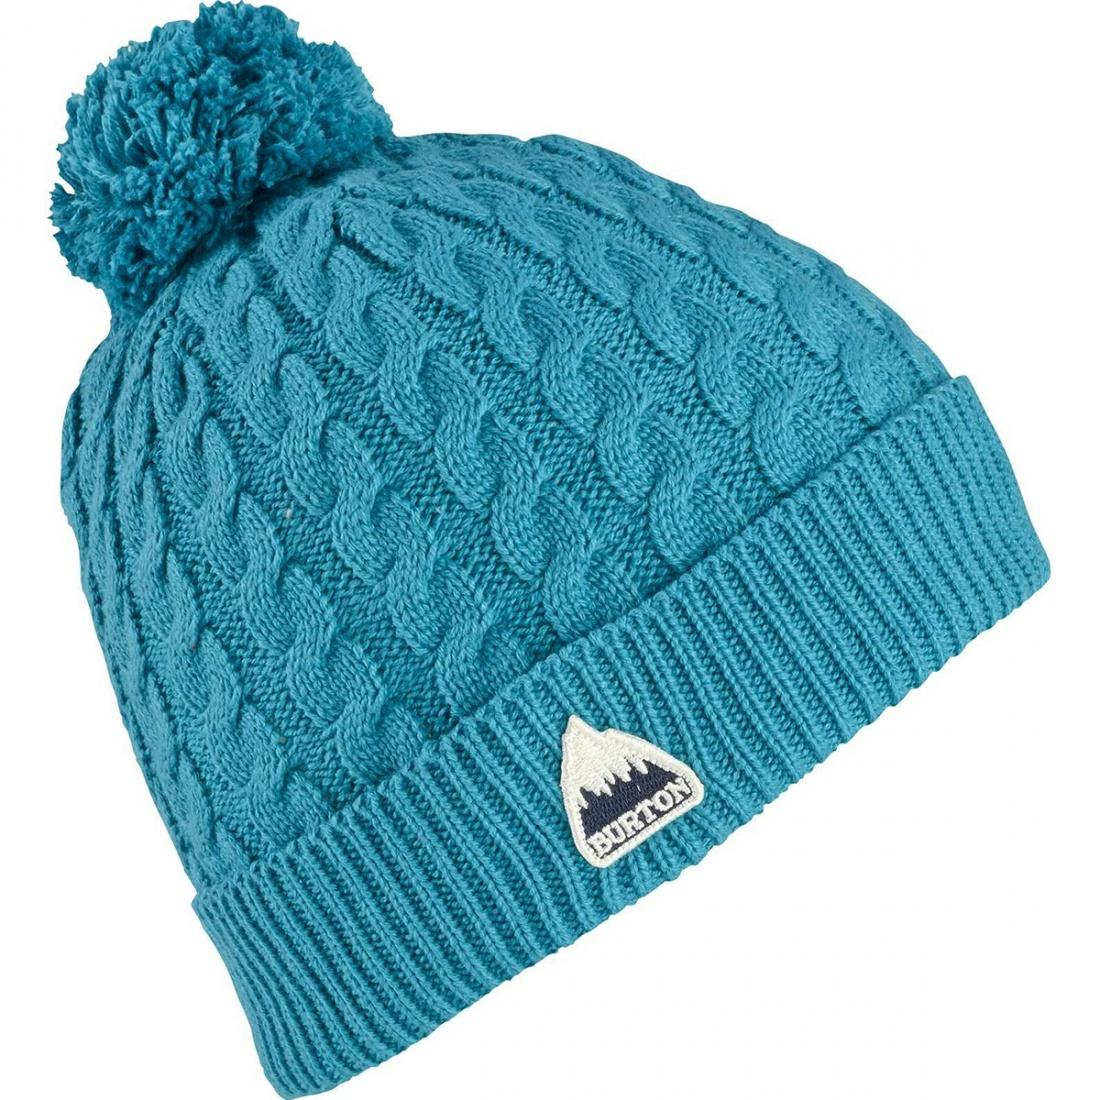 Burton Шапка Burton Mini Cable Beanie LARKSPUR, , , FW18 One size шапка женская neff daily sparkle beanie dark teal